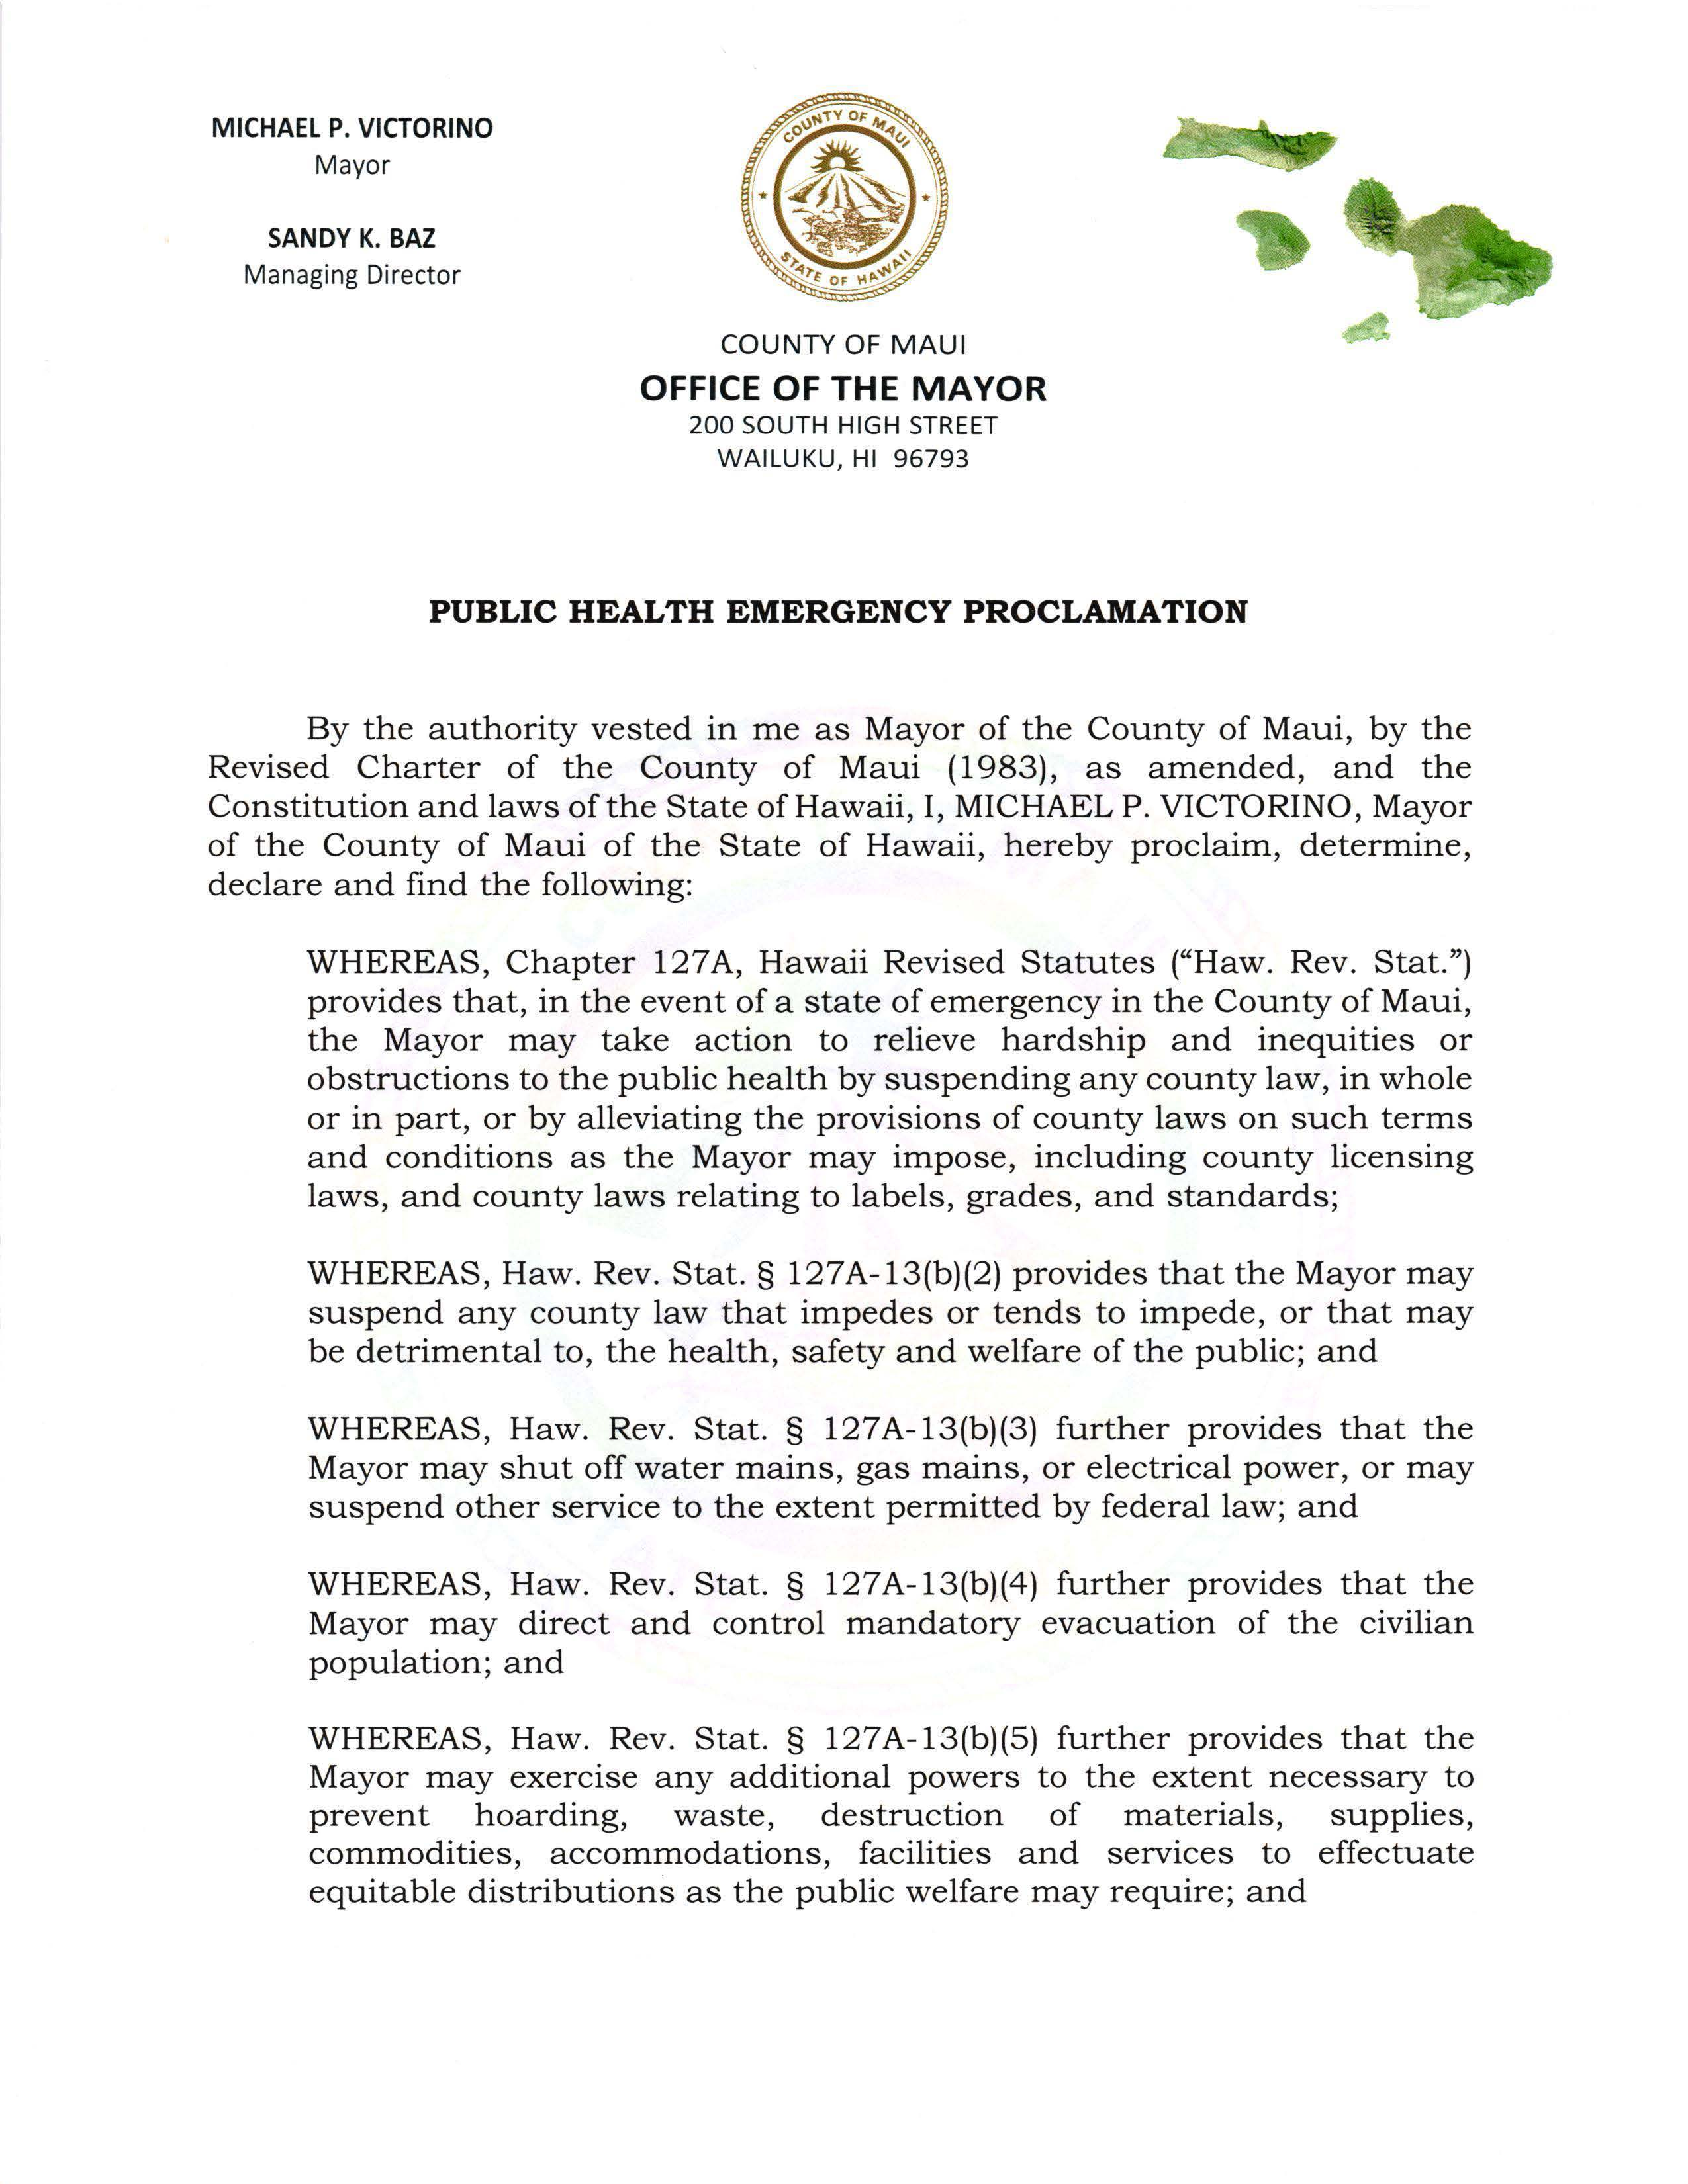 2020-03-04 Public Health Emergency Proclamation